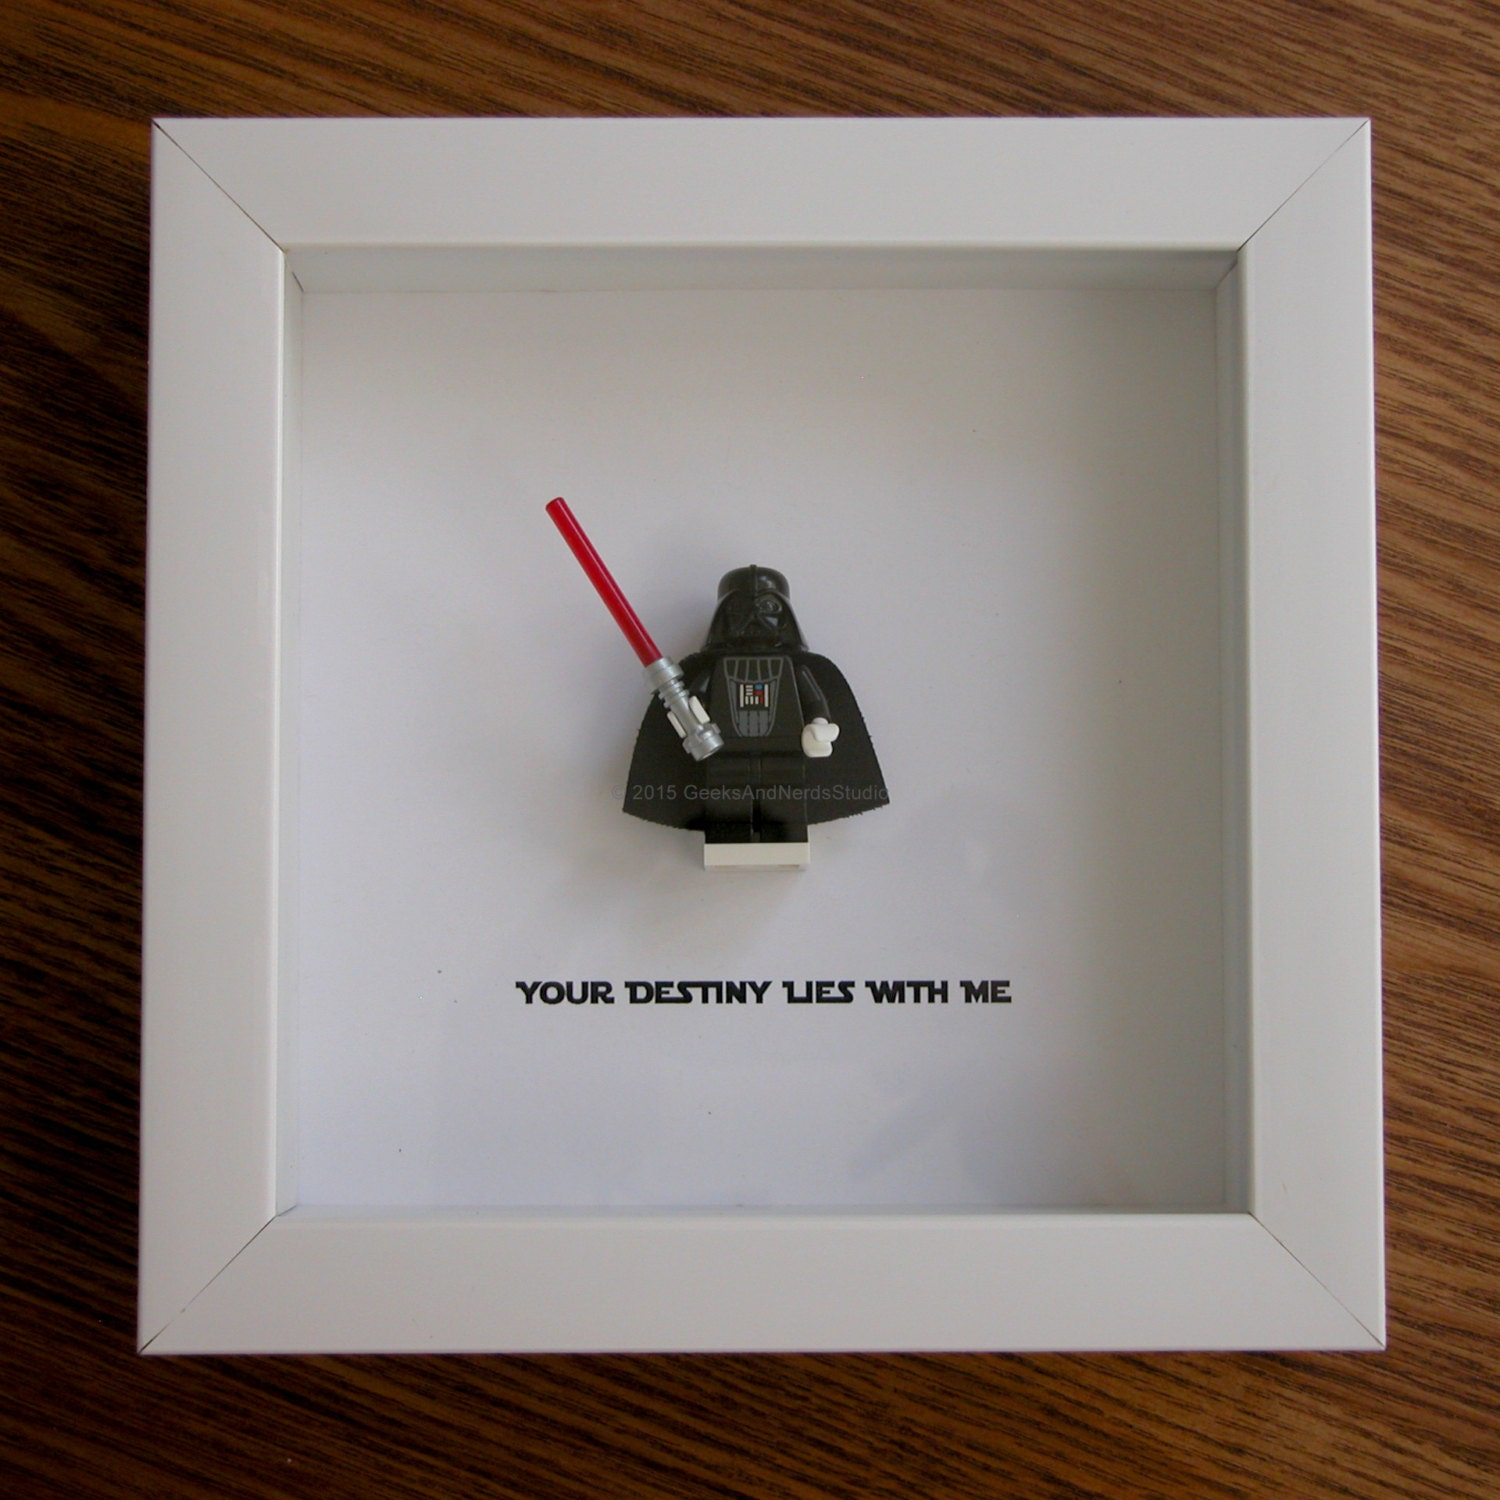 Star Wars Art Framed LEGO Darth Vader LEGO Christmas